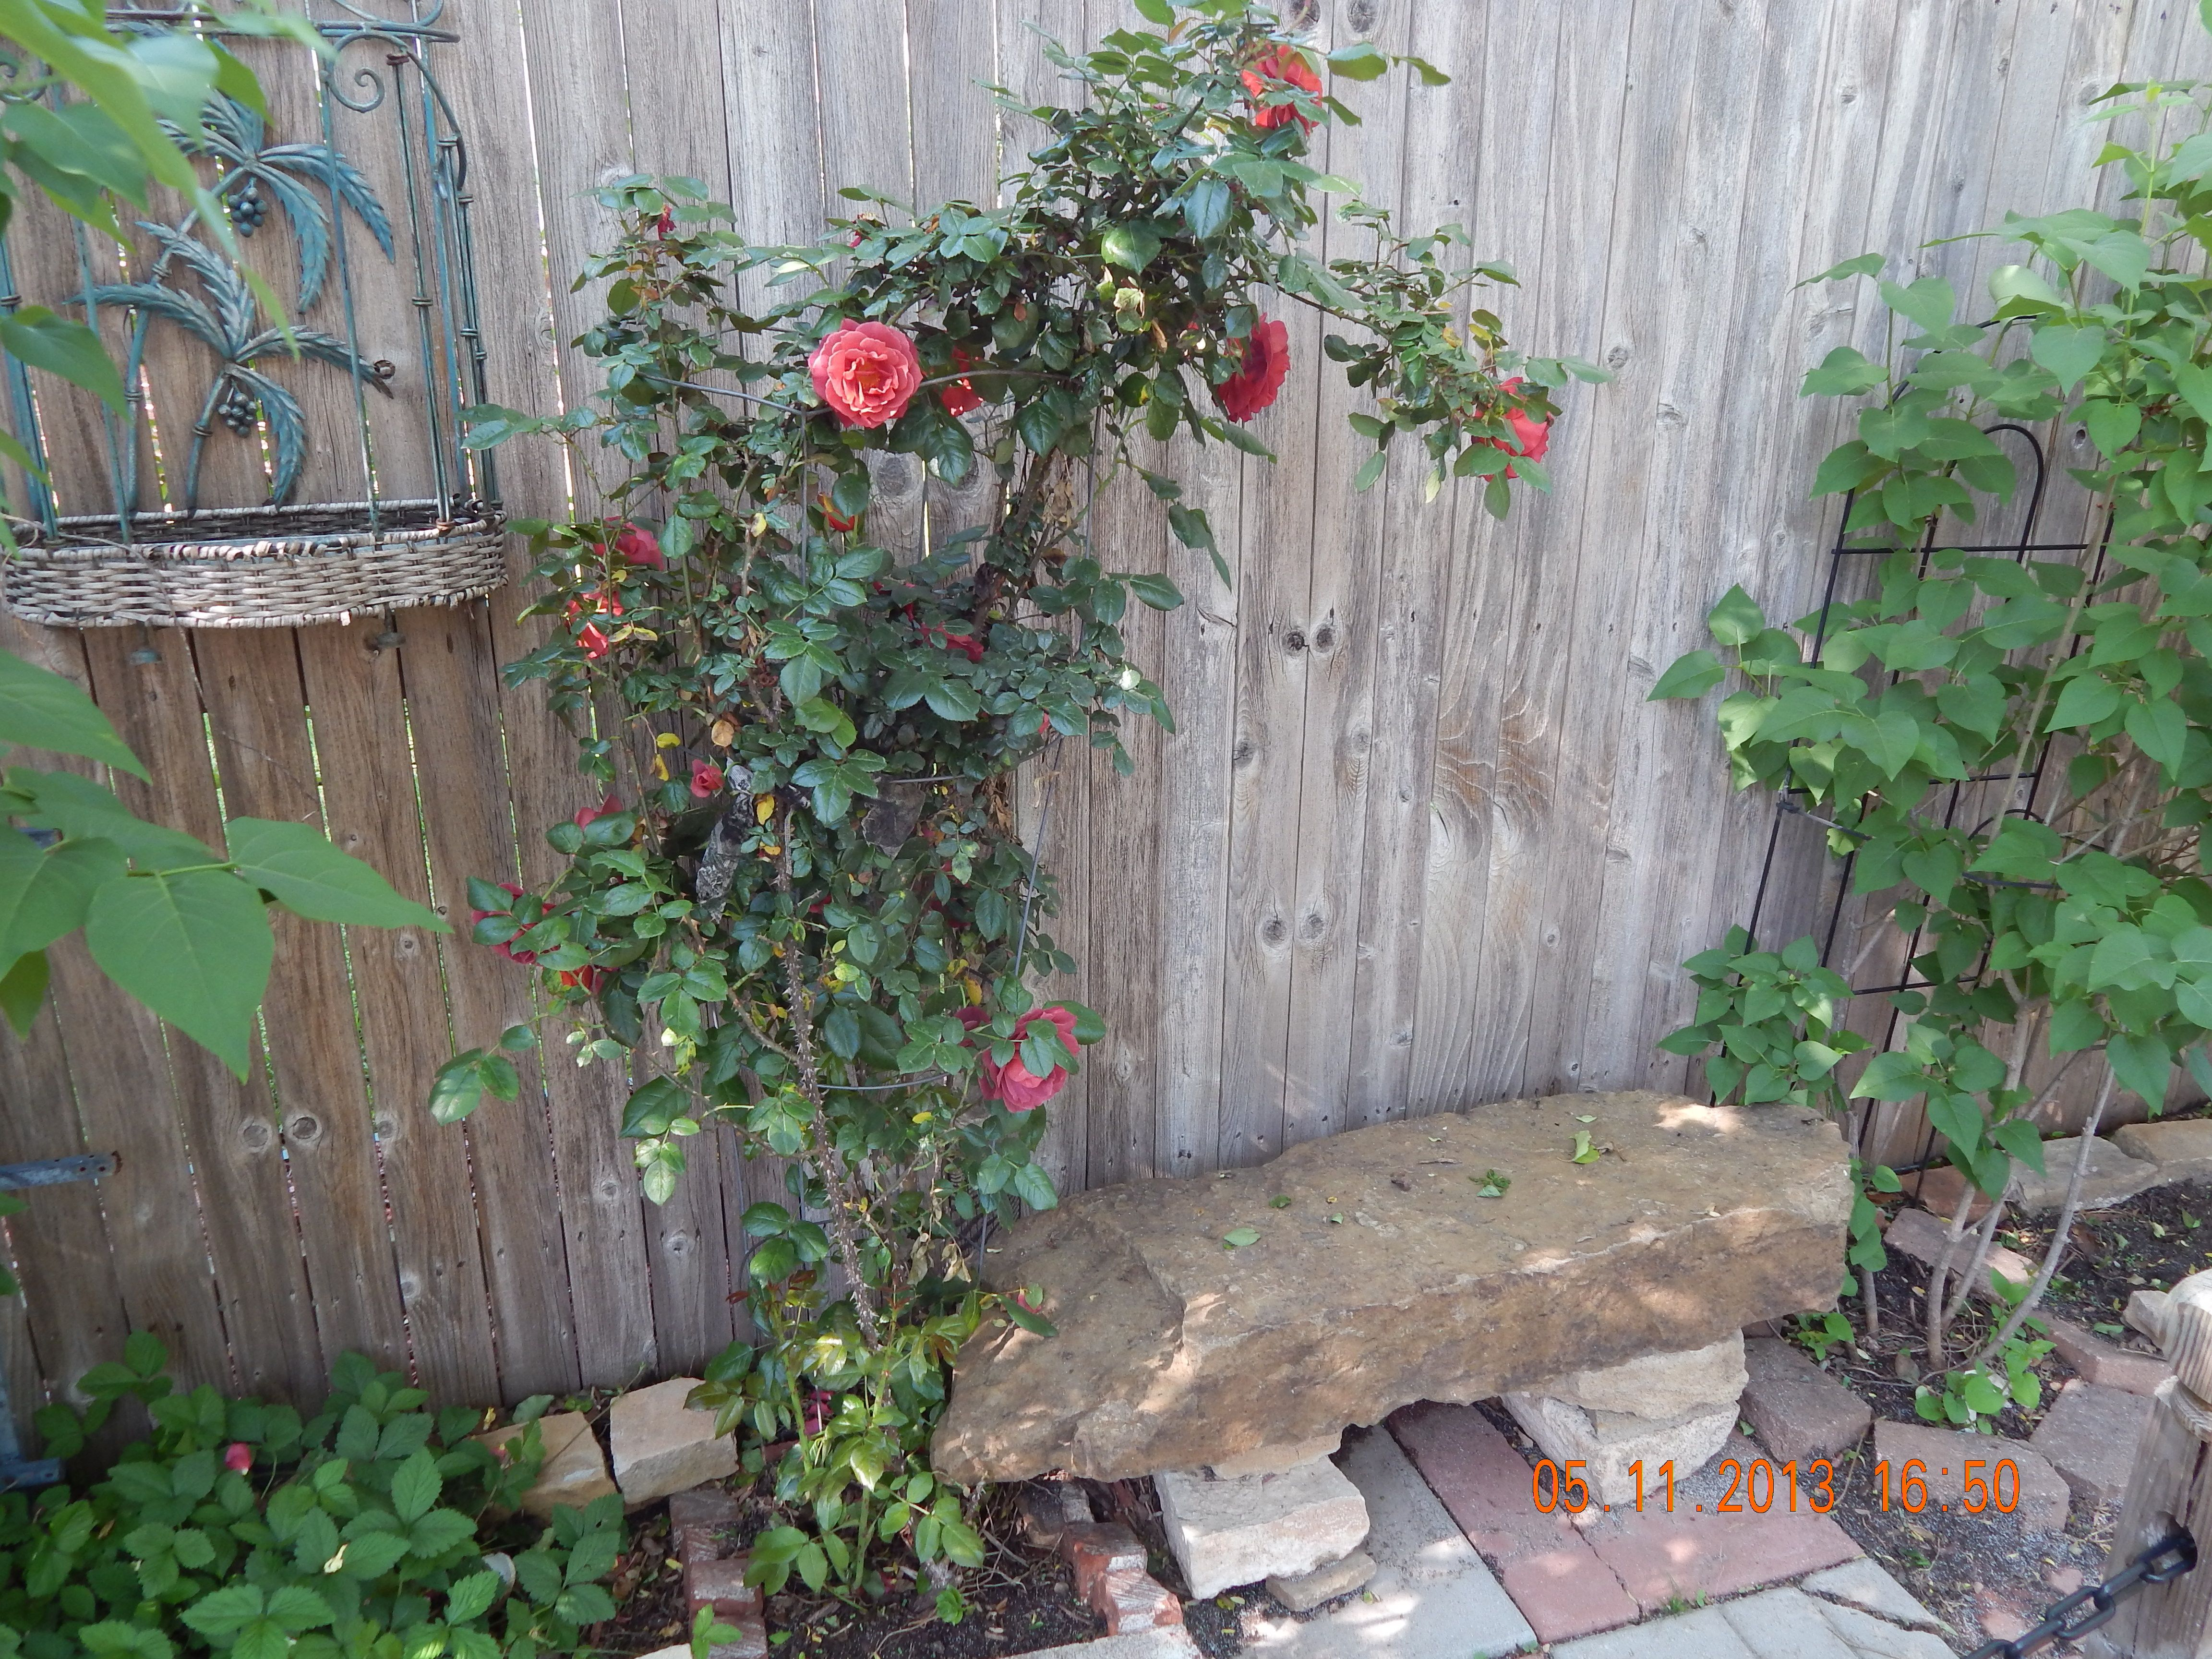 A STONE BENCH ALONG THE FENCE LINE!